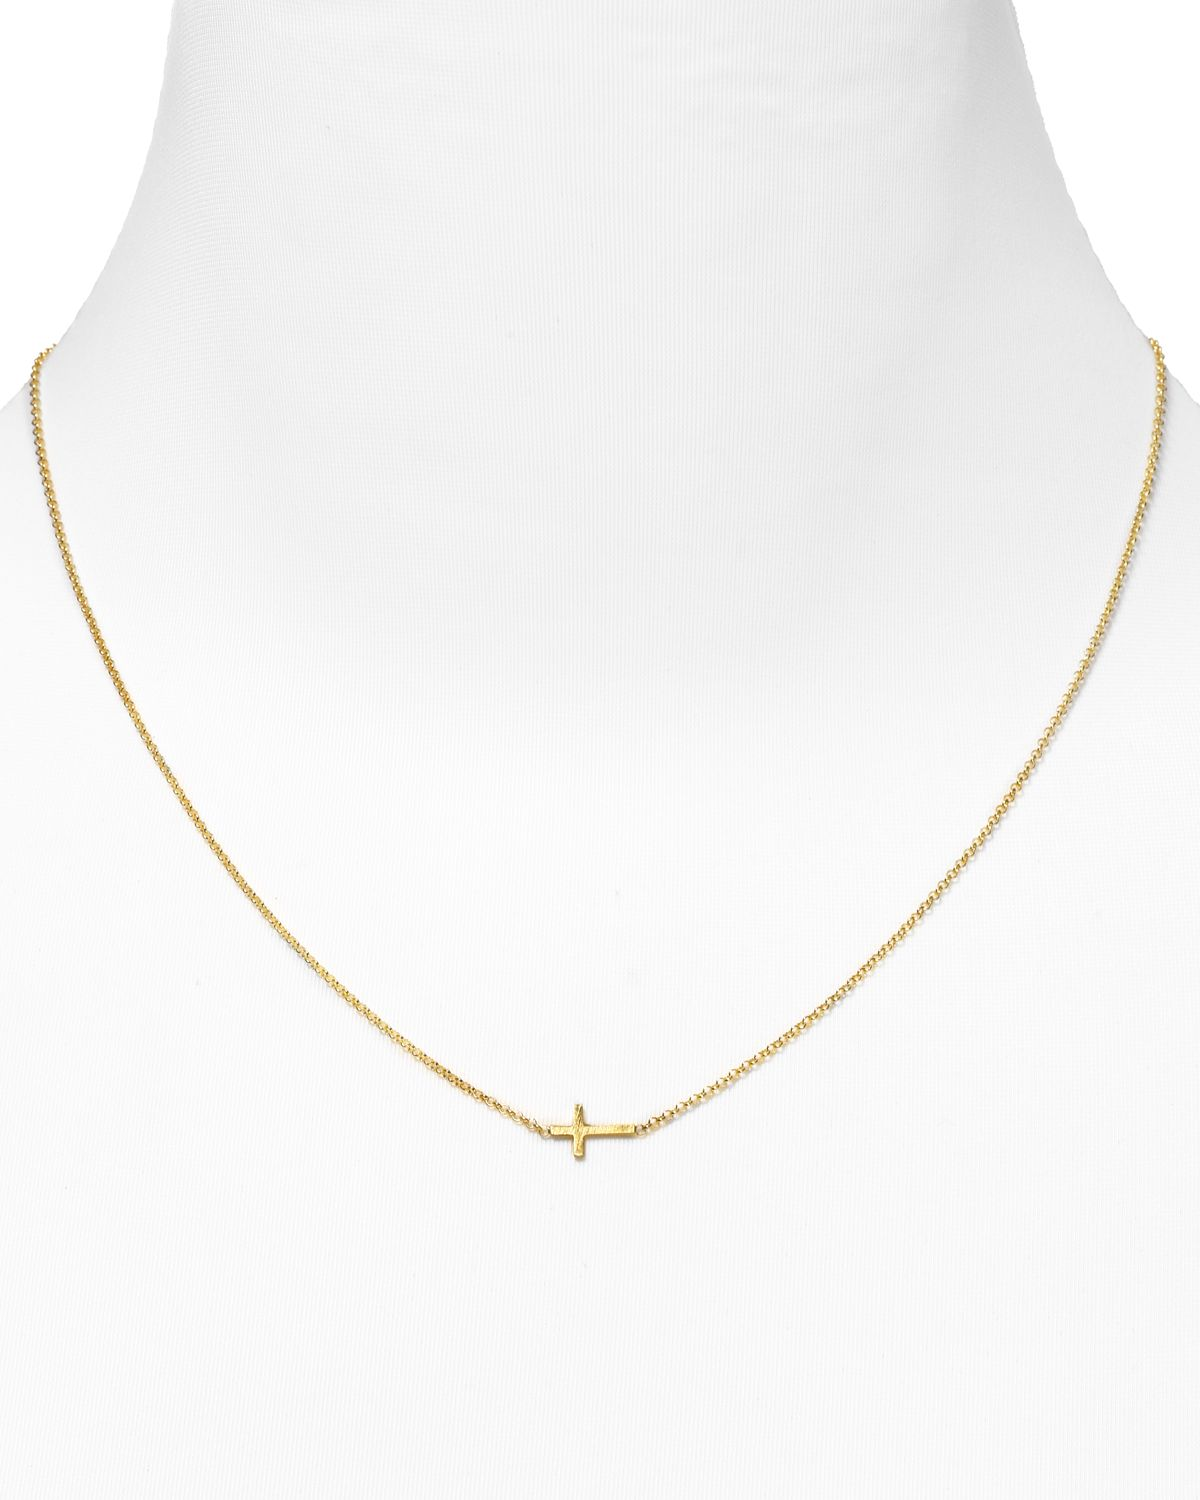 dogeared gold whisper cross necklace 18 quot in gold lyst